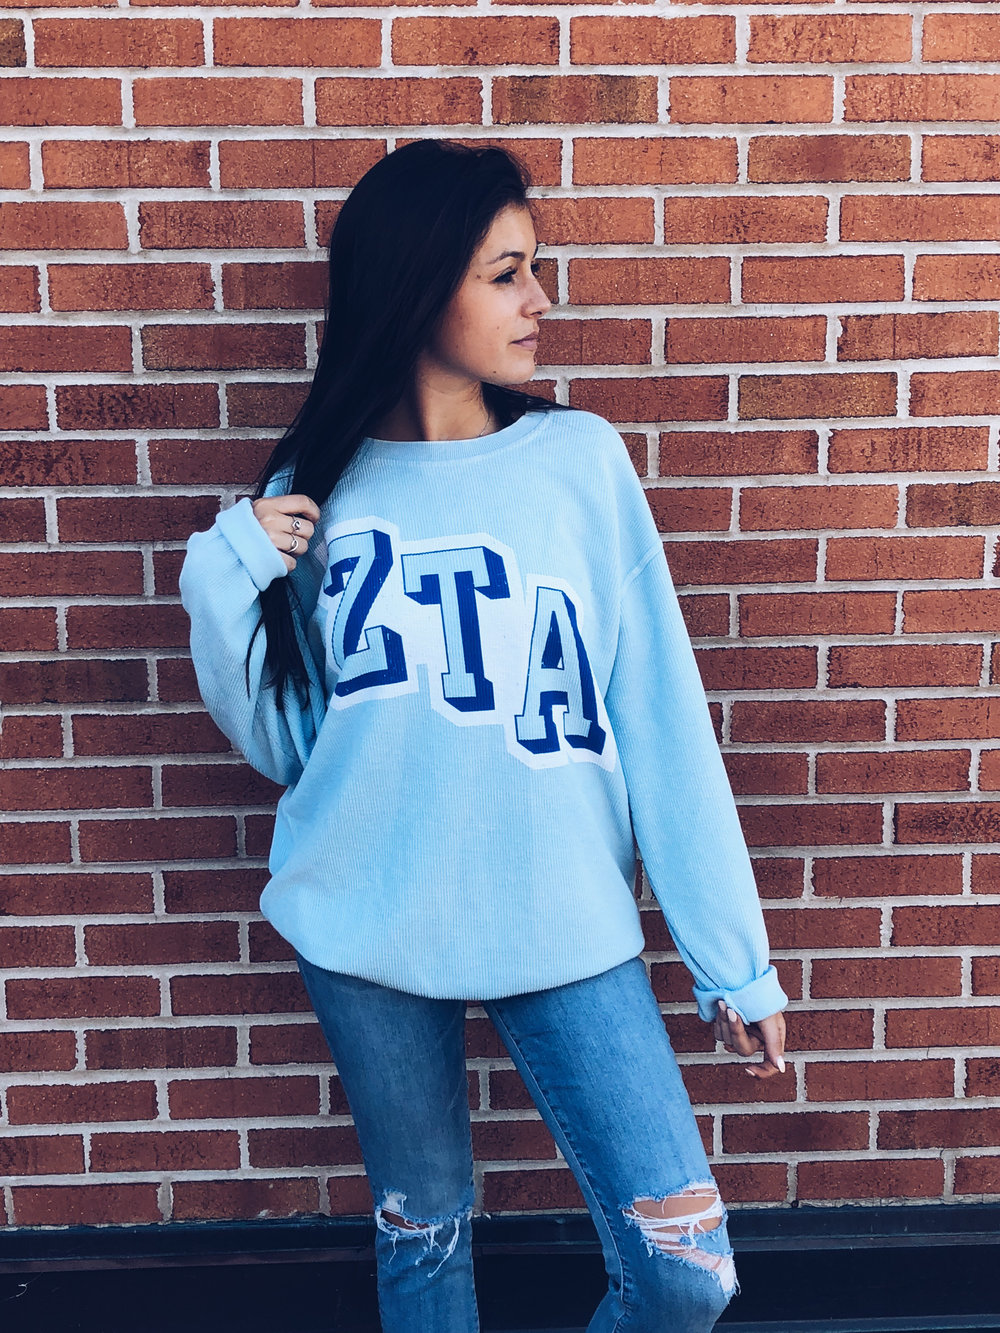 7. Charles River Apparel Corded Crewneck - Our softest sweatshirt. Ever. Soft, distressed and oversized!